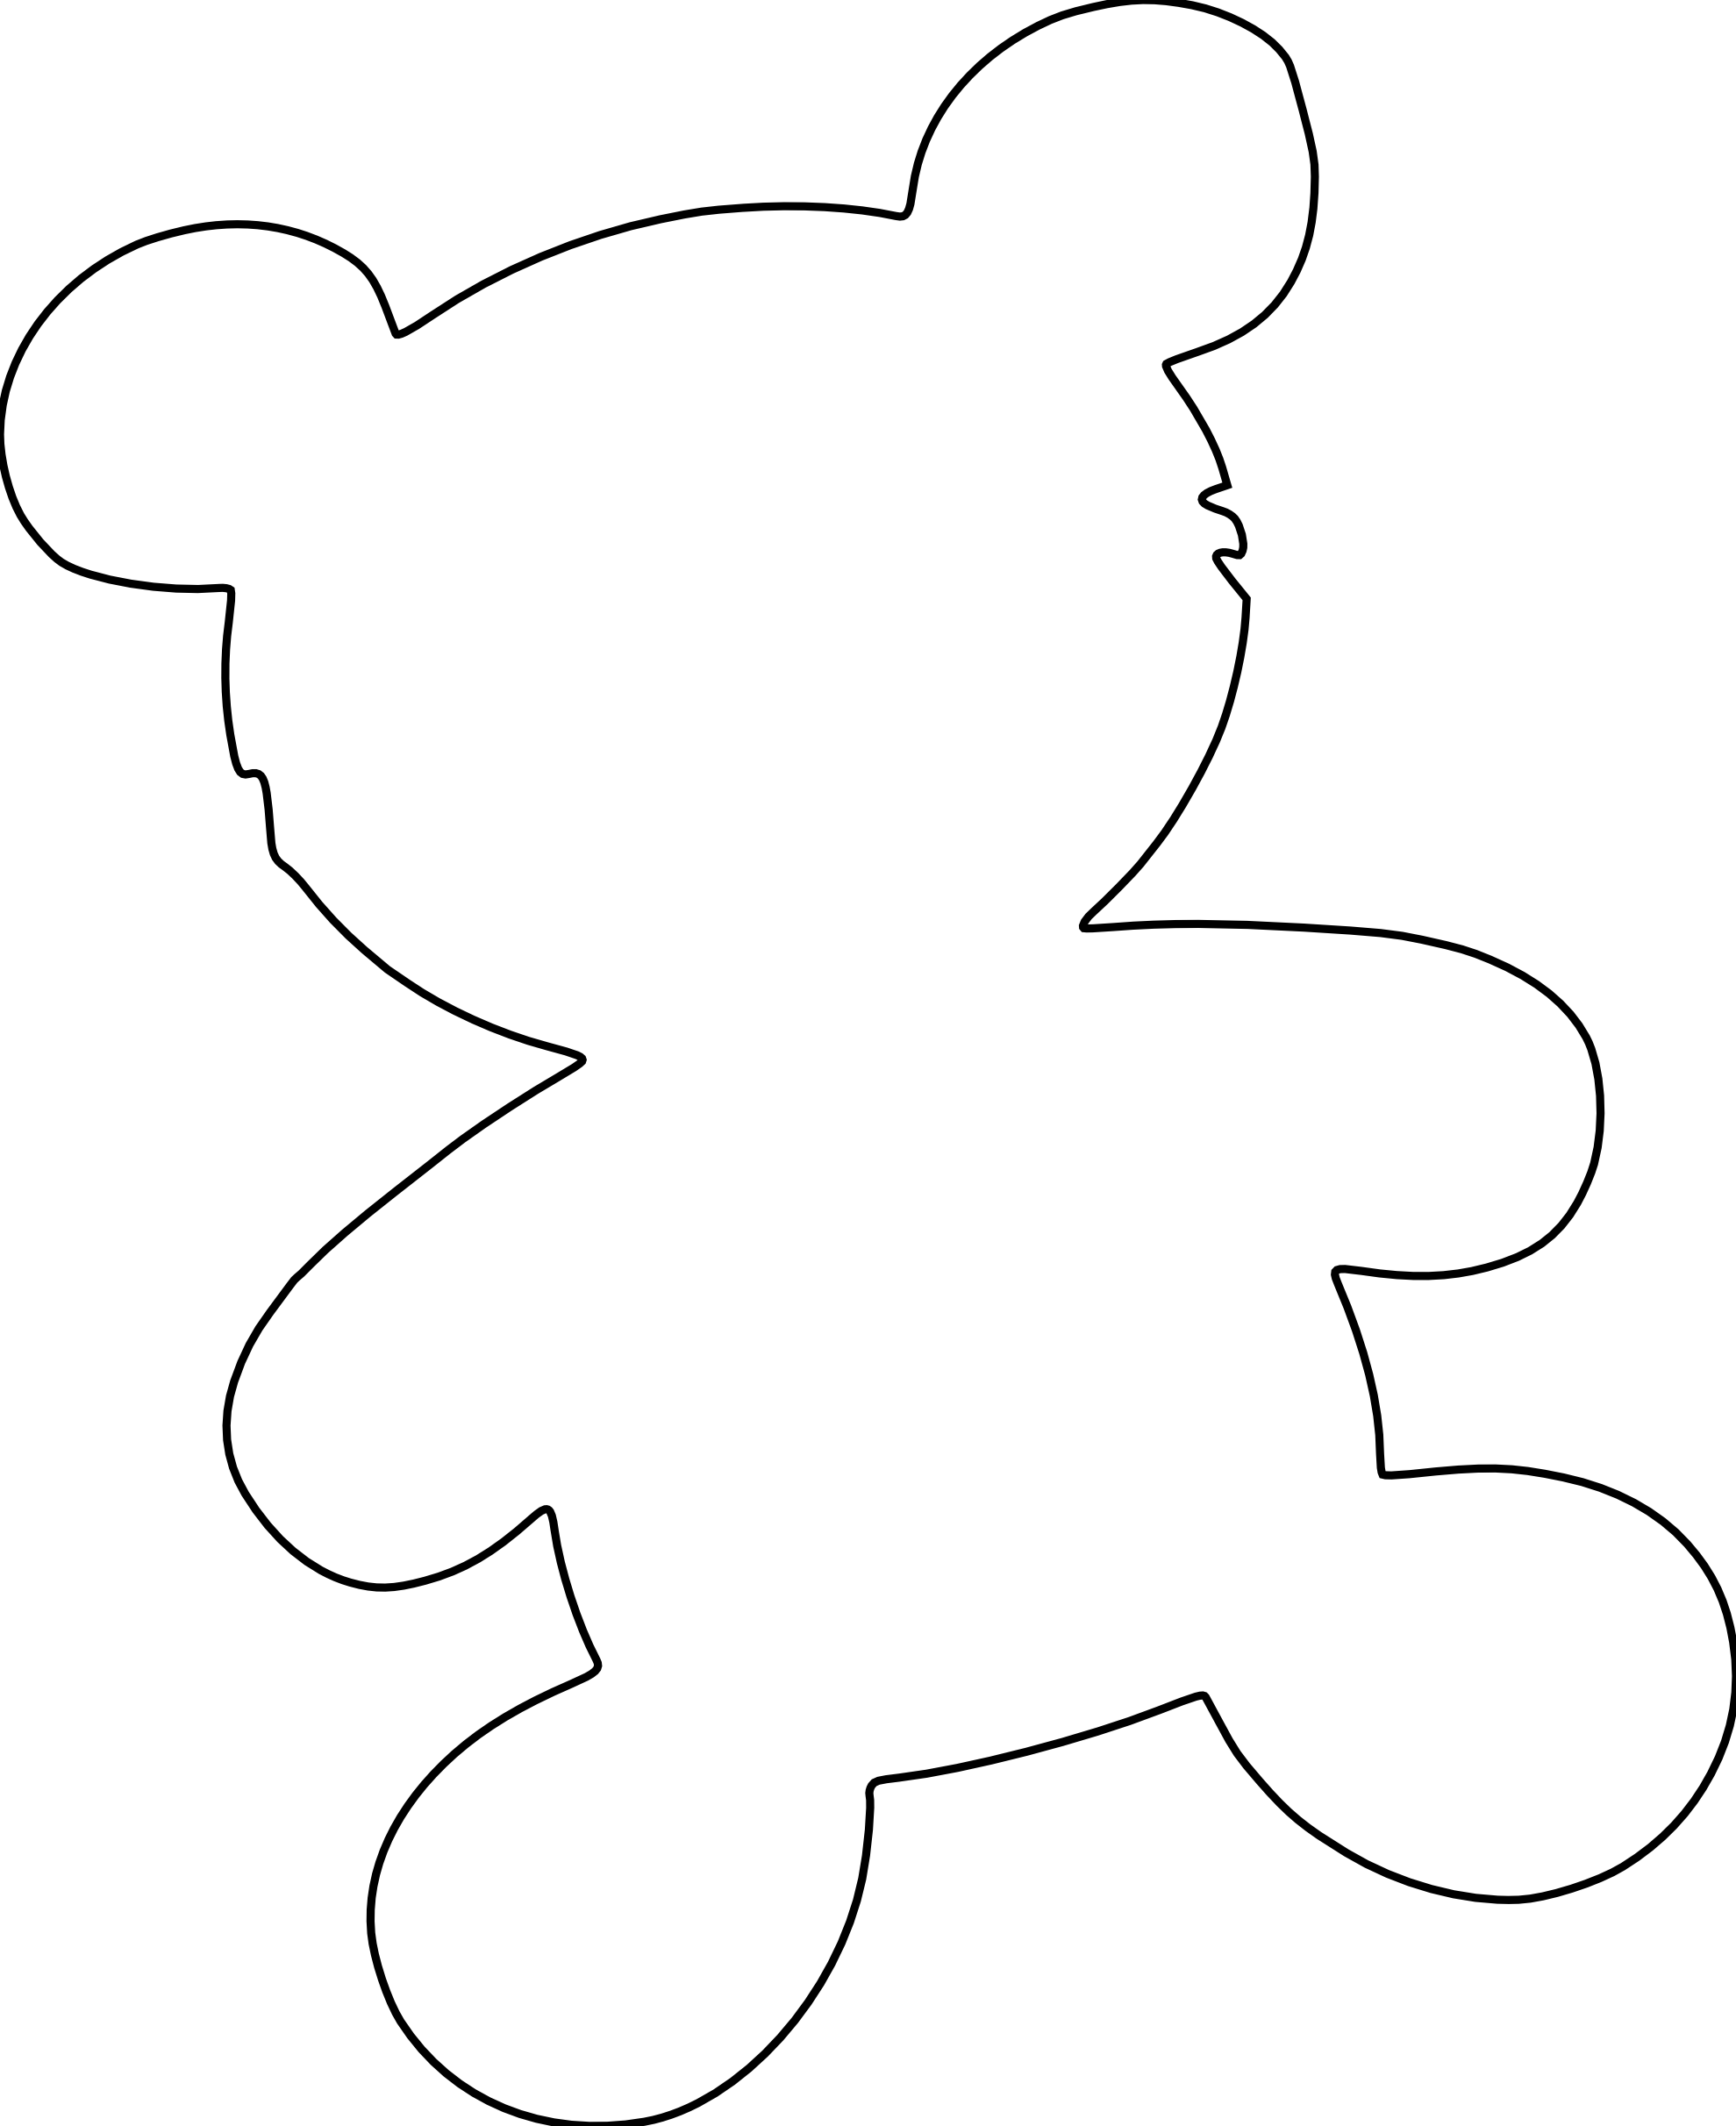 Teddy clipart coloring #1